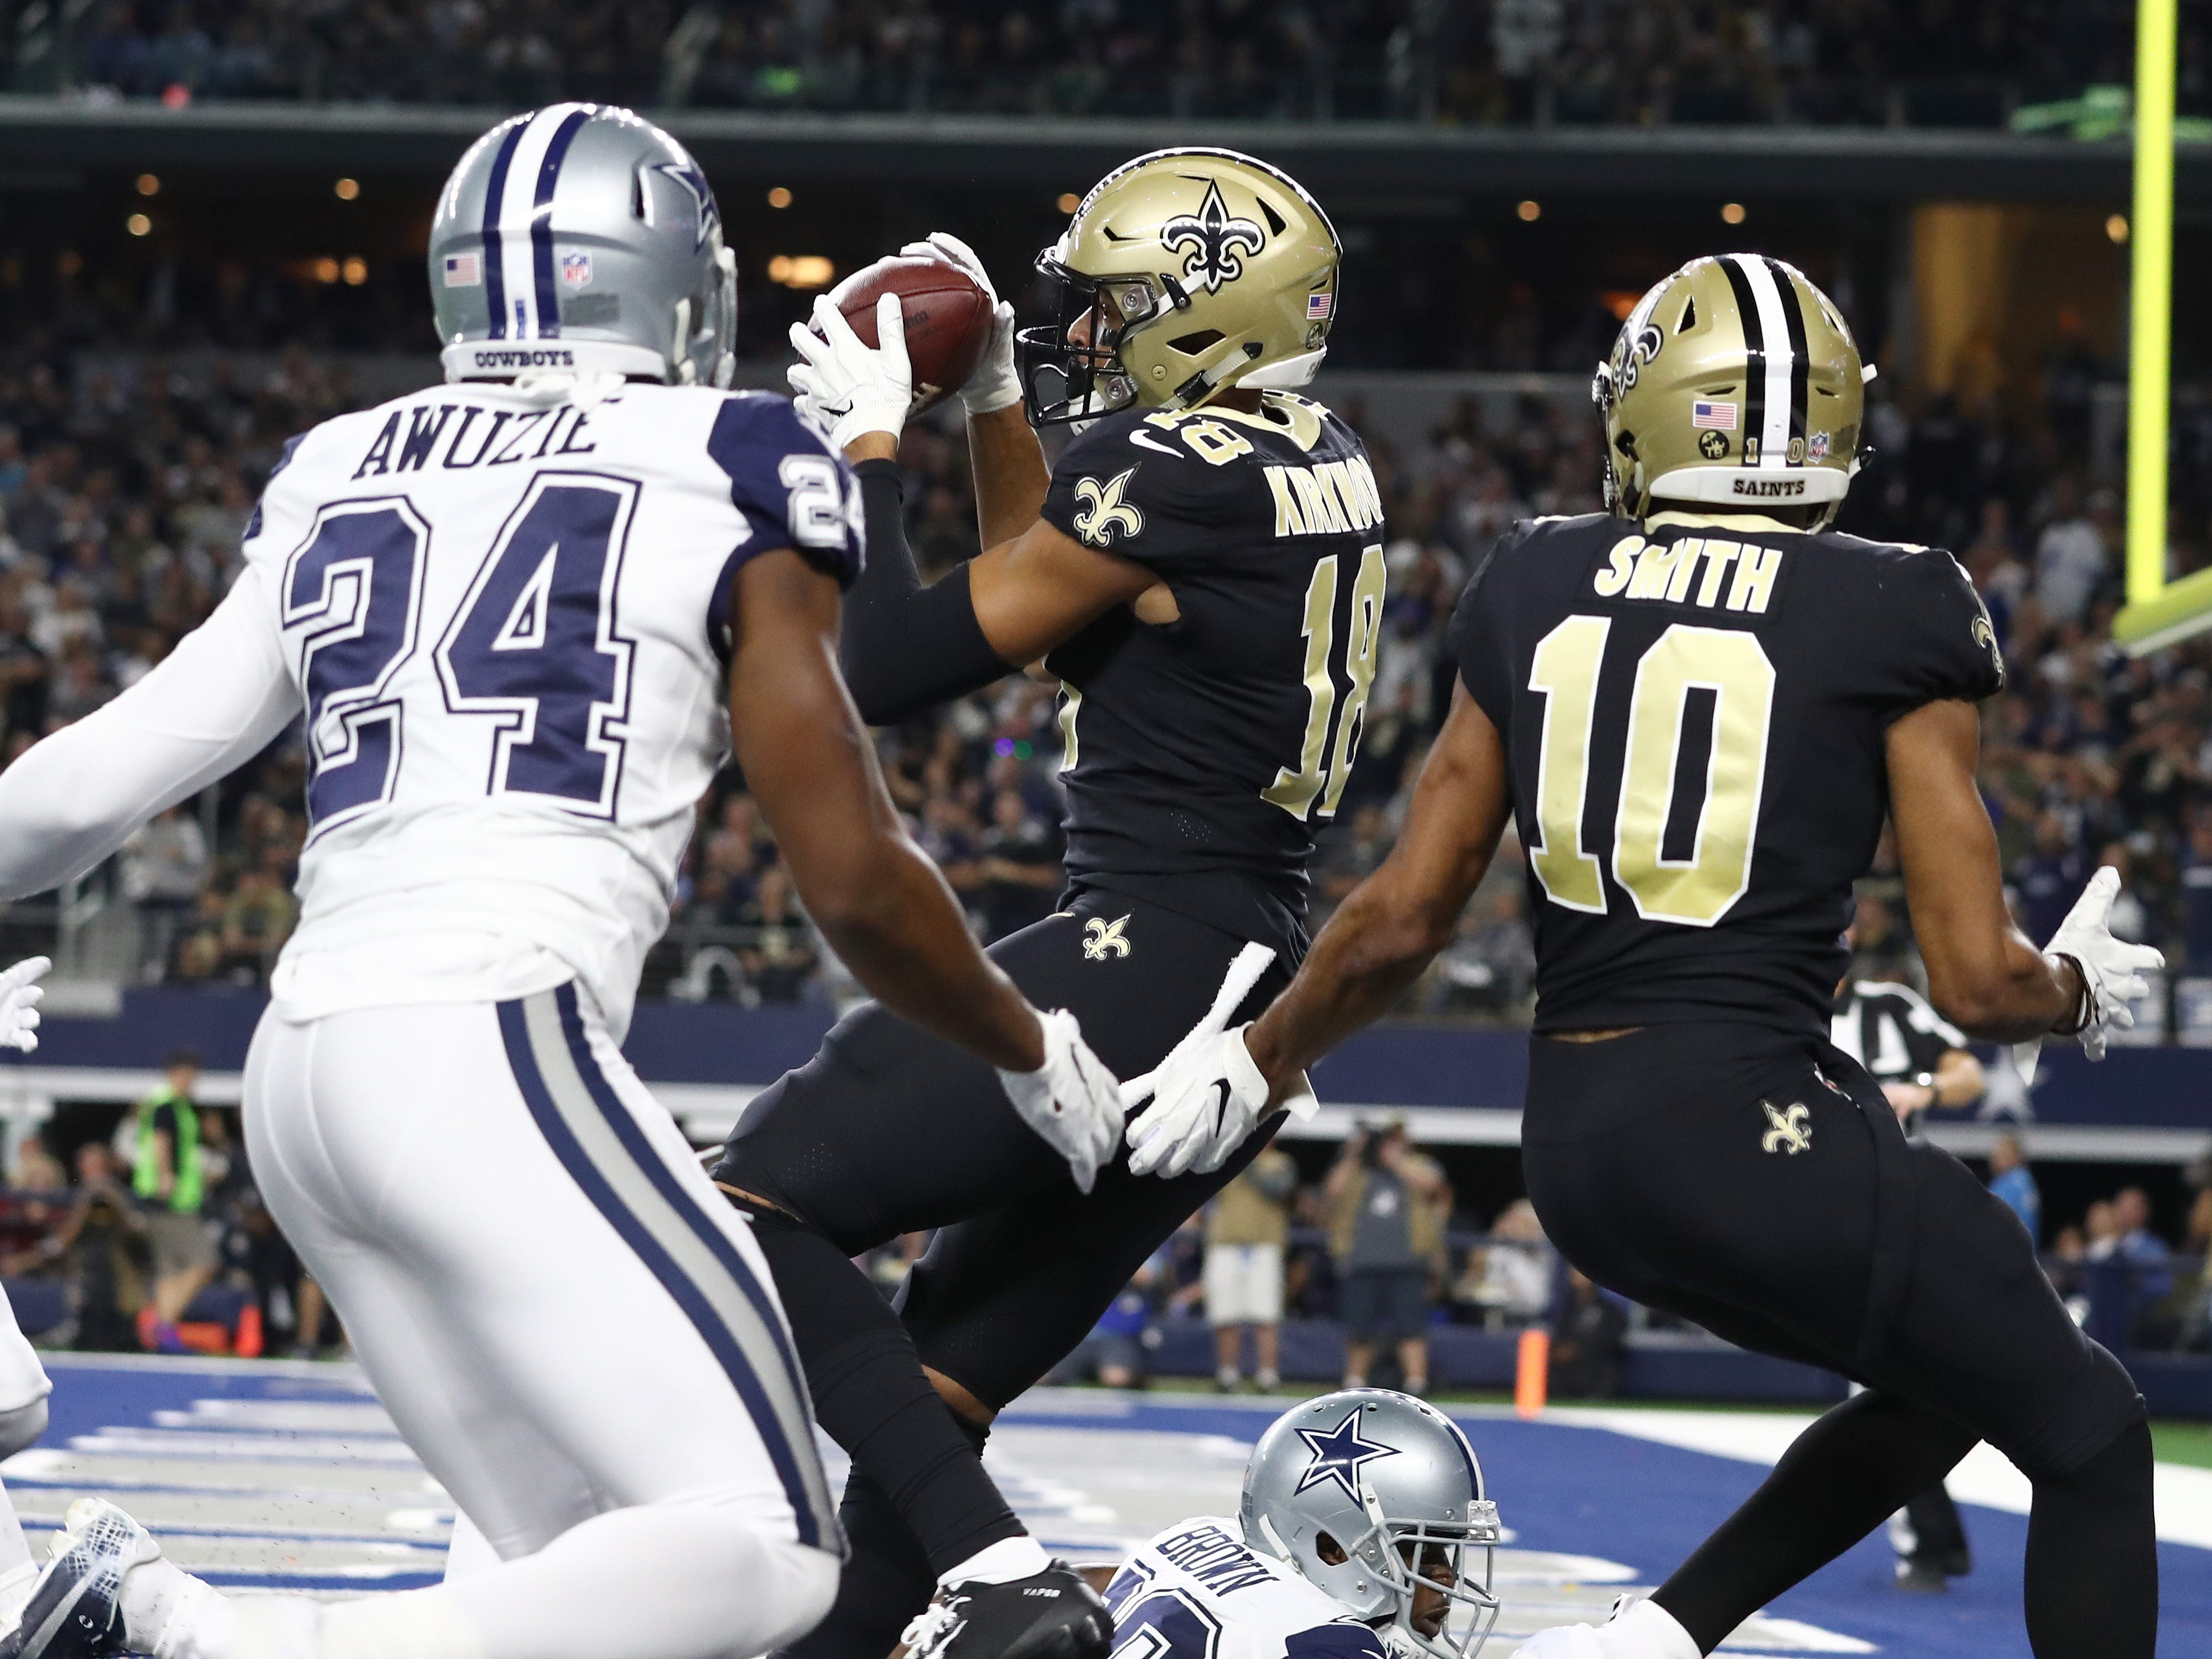 New Orleans Saints receiver Keith Kirkwood catches a touchdown pass against the Dallas Cowboys at AT&T Stadium.